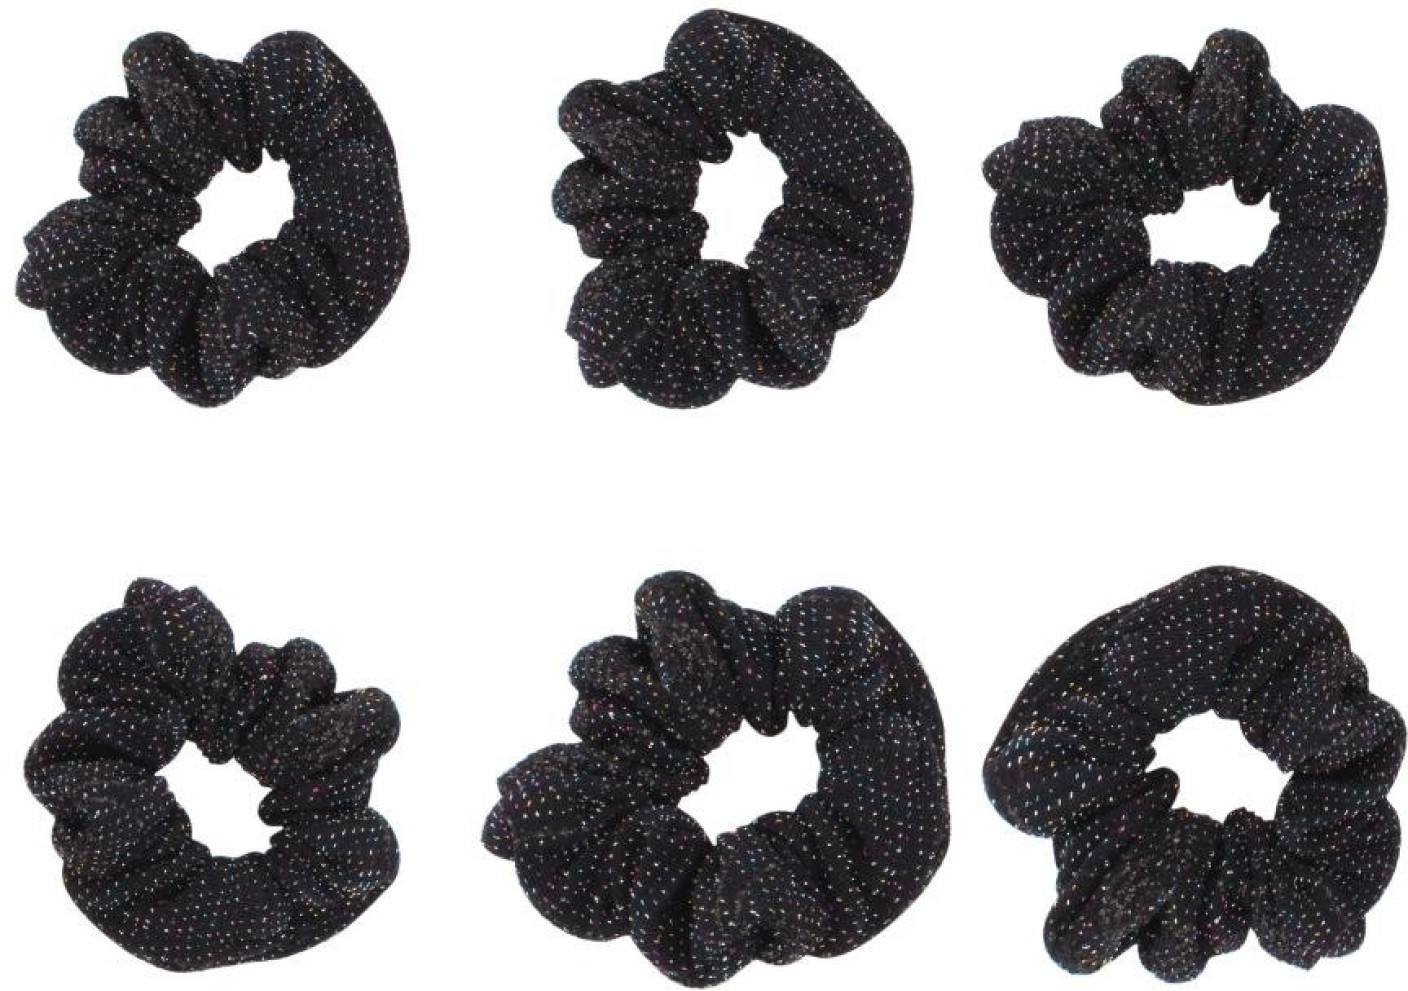 Accessher Dailywear Big Hair Ties Rubber Band Price In